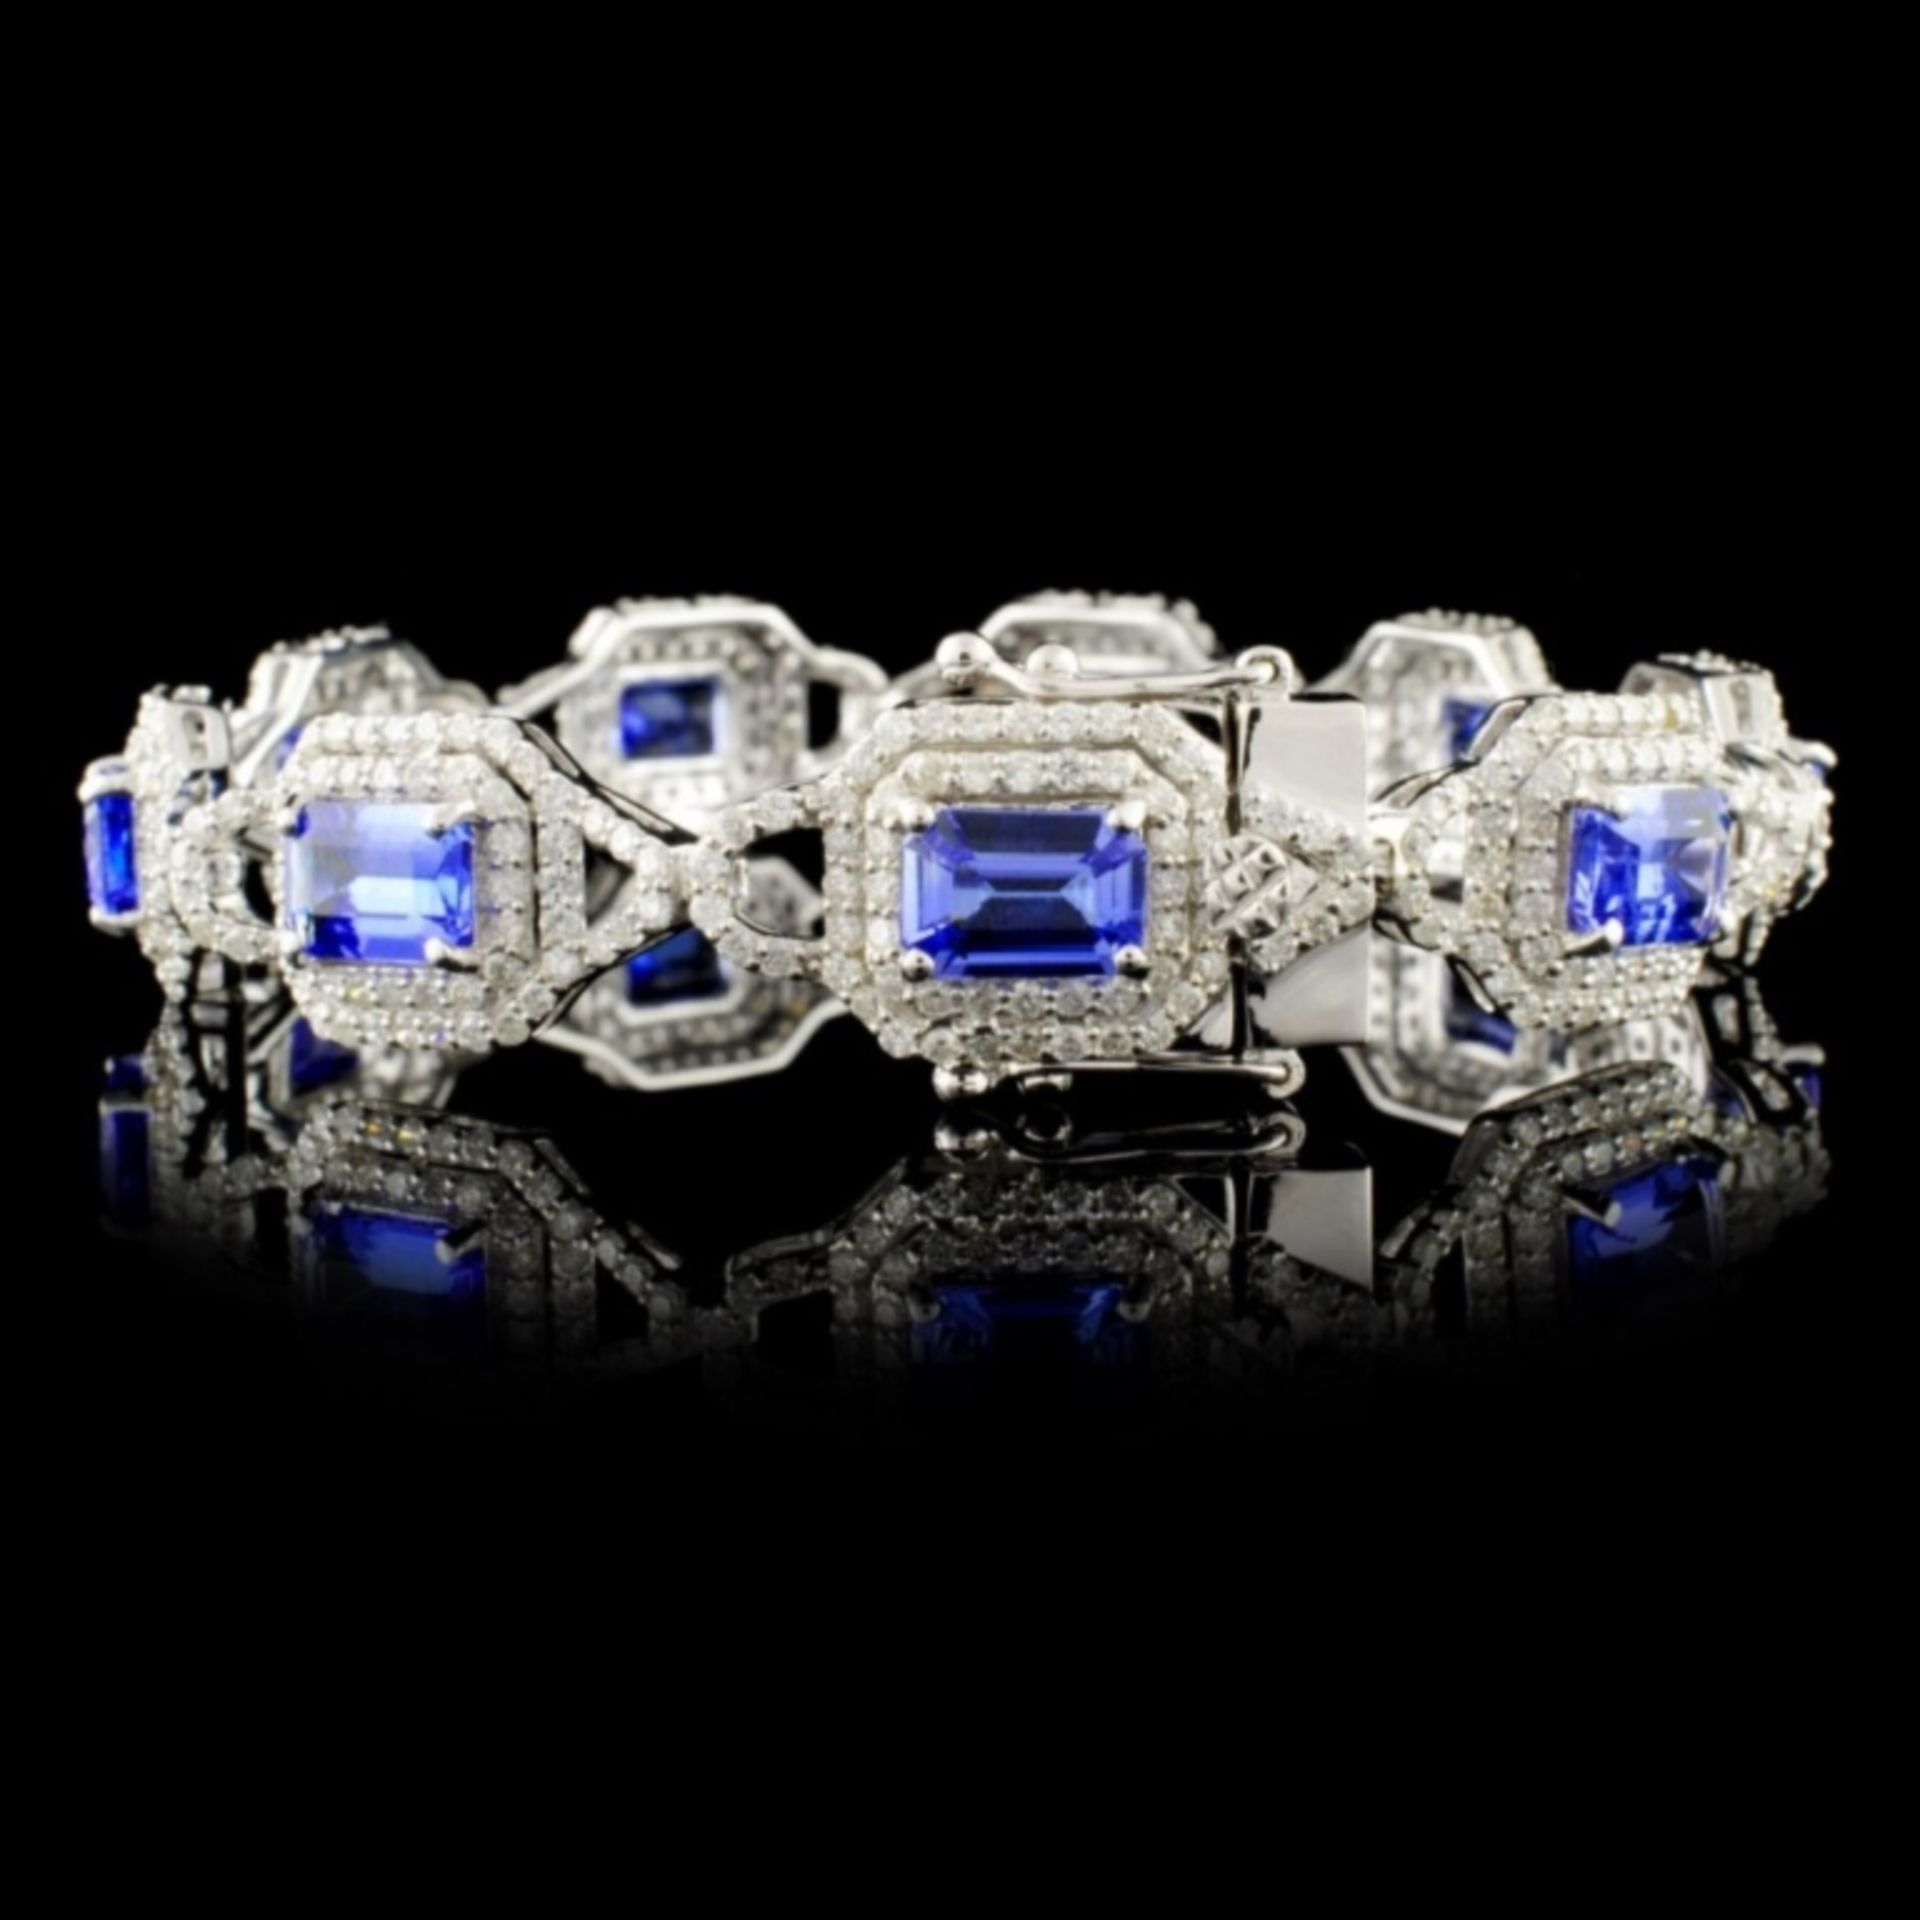 14K Gold 8.41ct Tanzanite & 3.91ctw Diam Bracelet - Image 2 of 3